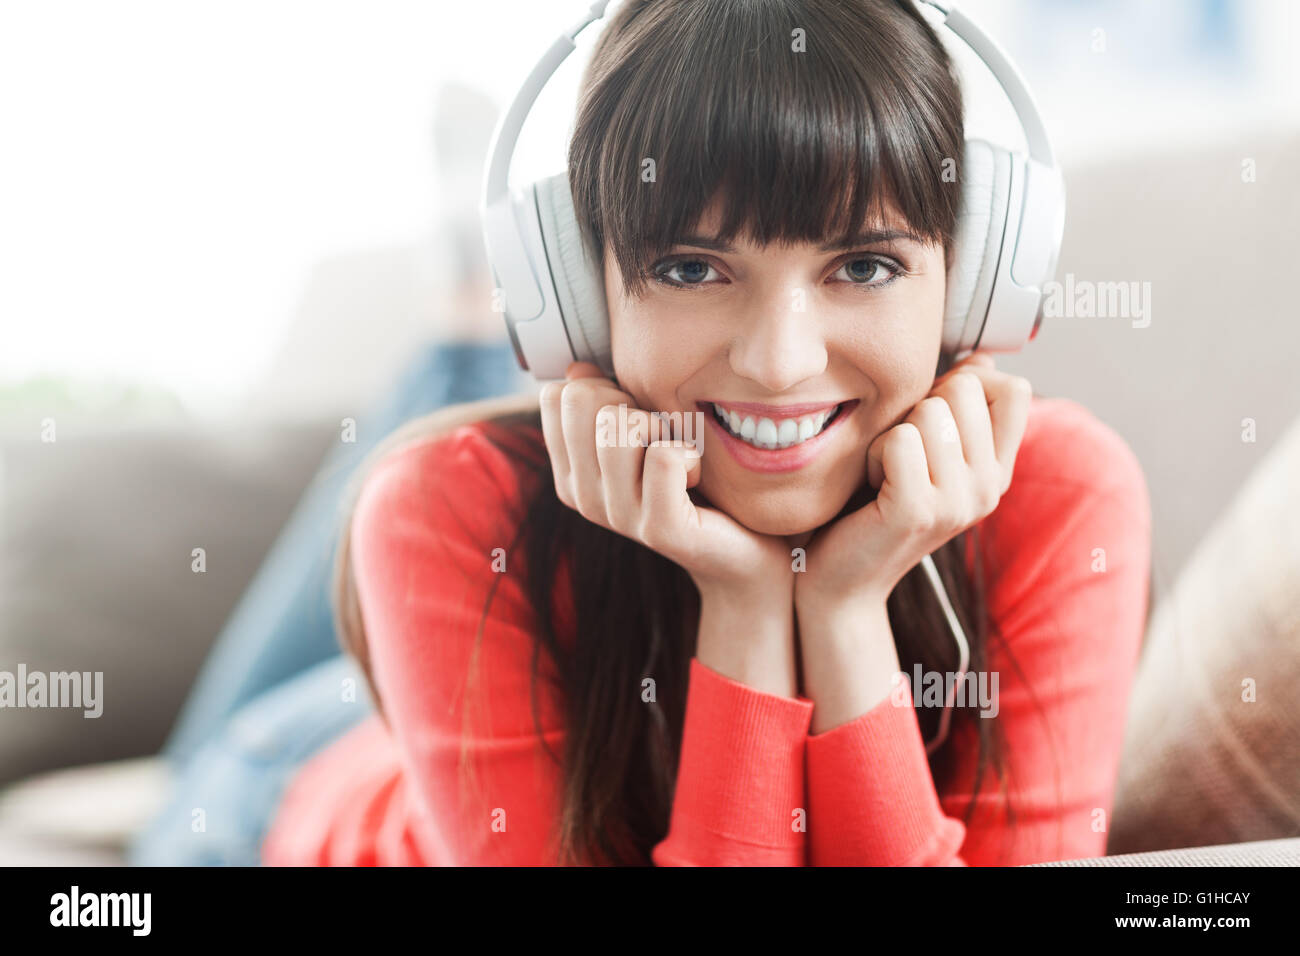 Young smiling woman relaxing and listening to music with headphones - Stock Image